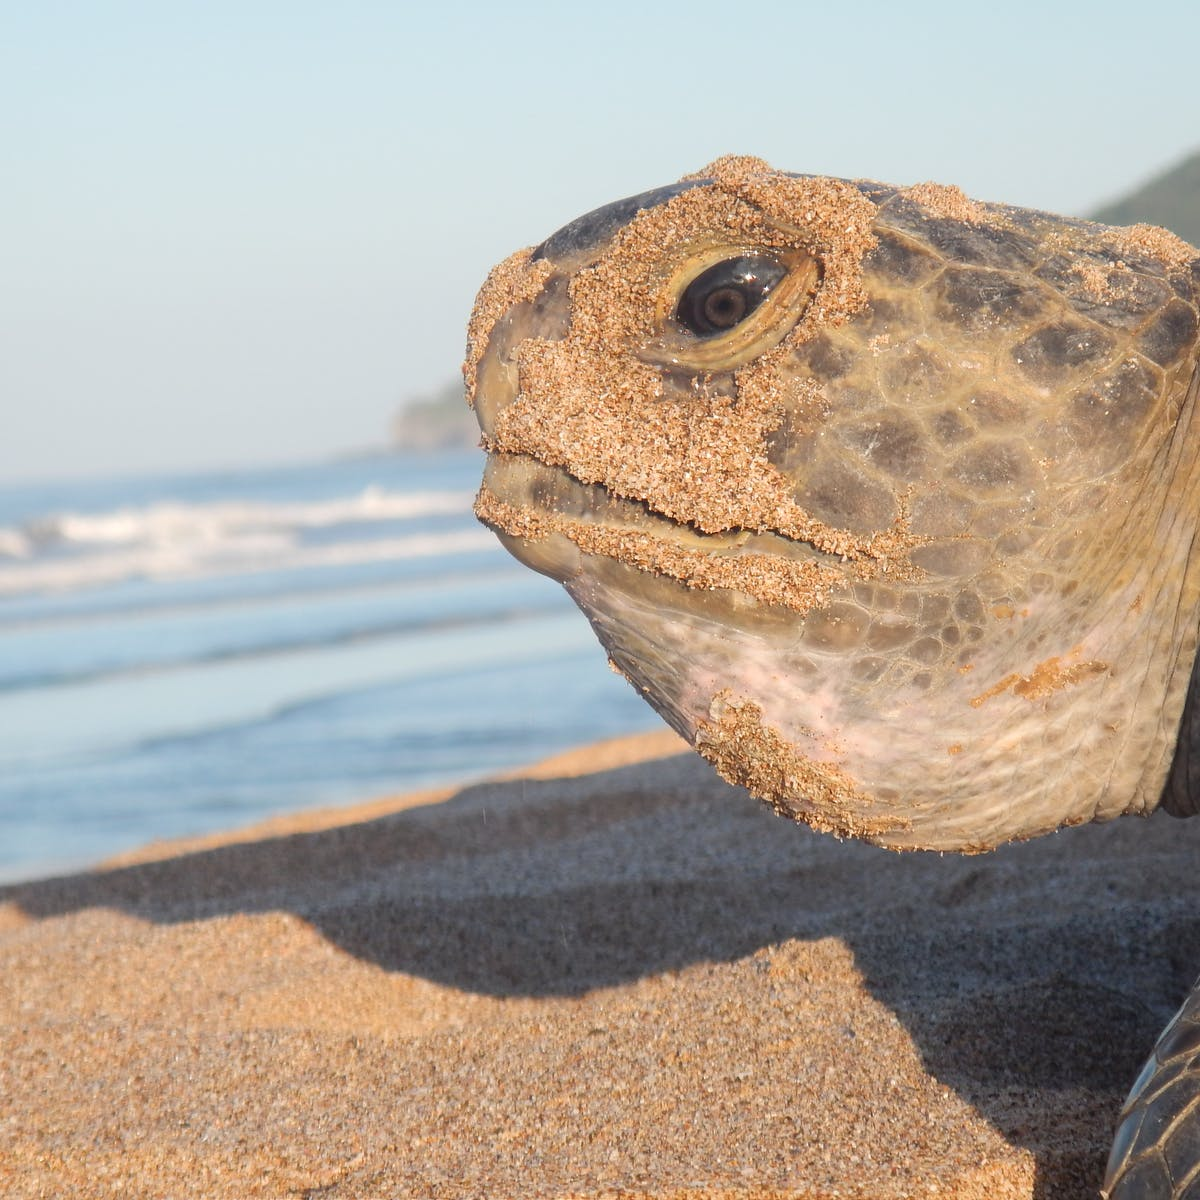 Sea turtle 'hitchhikers' could play an important role in